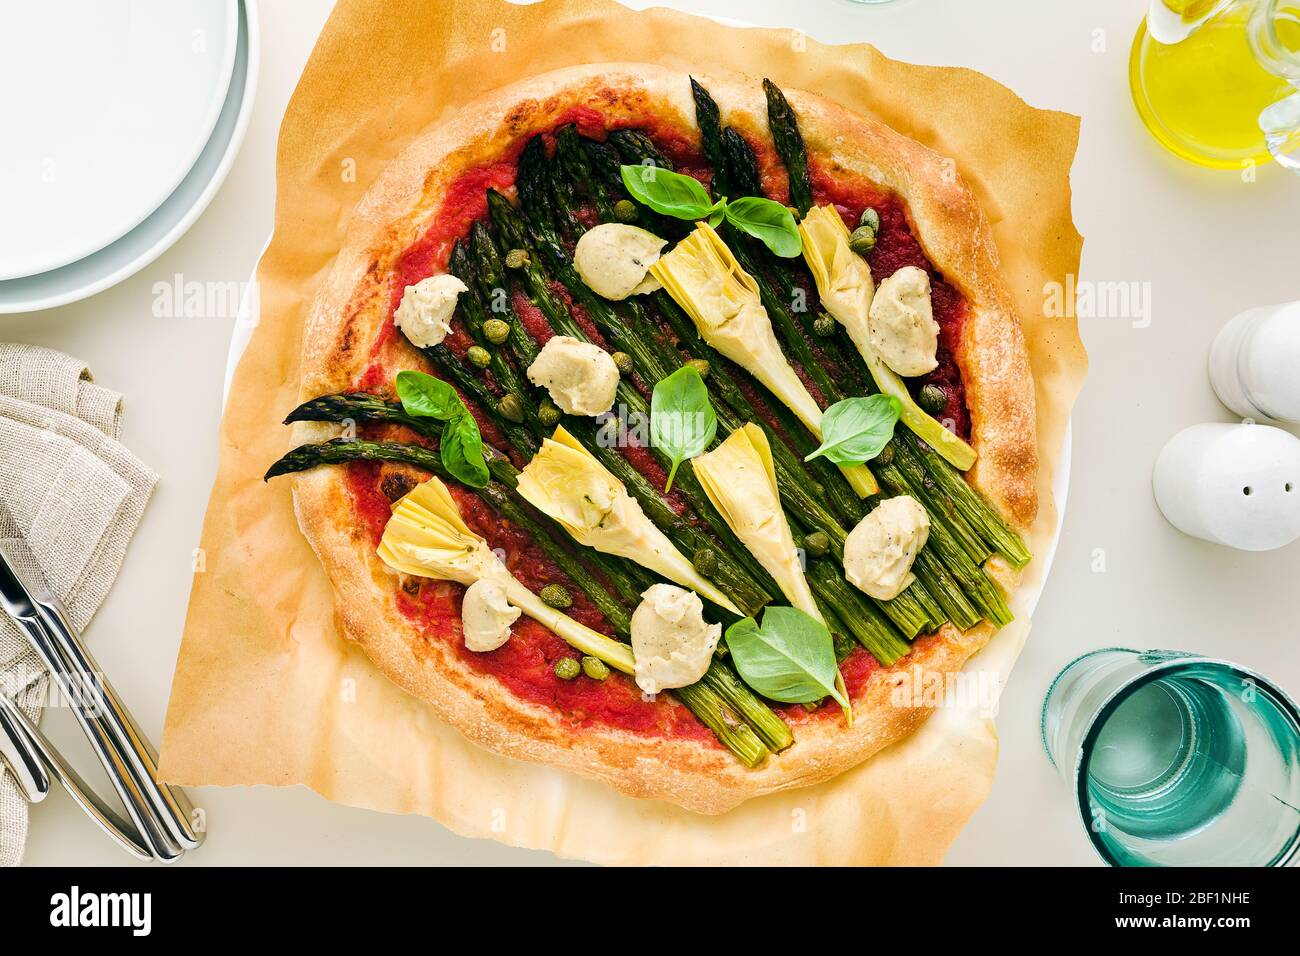 vegan pizza with asparagus and artichokes, served on the table for family or friends. Healthy lunch or dinner. Stock Photo